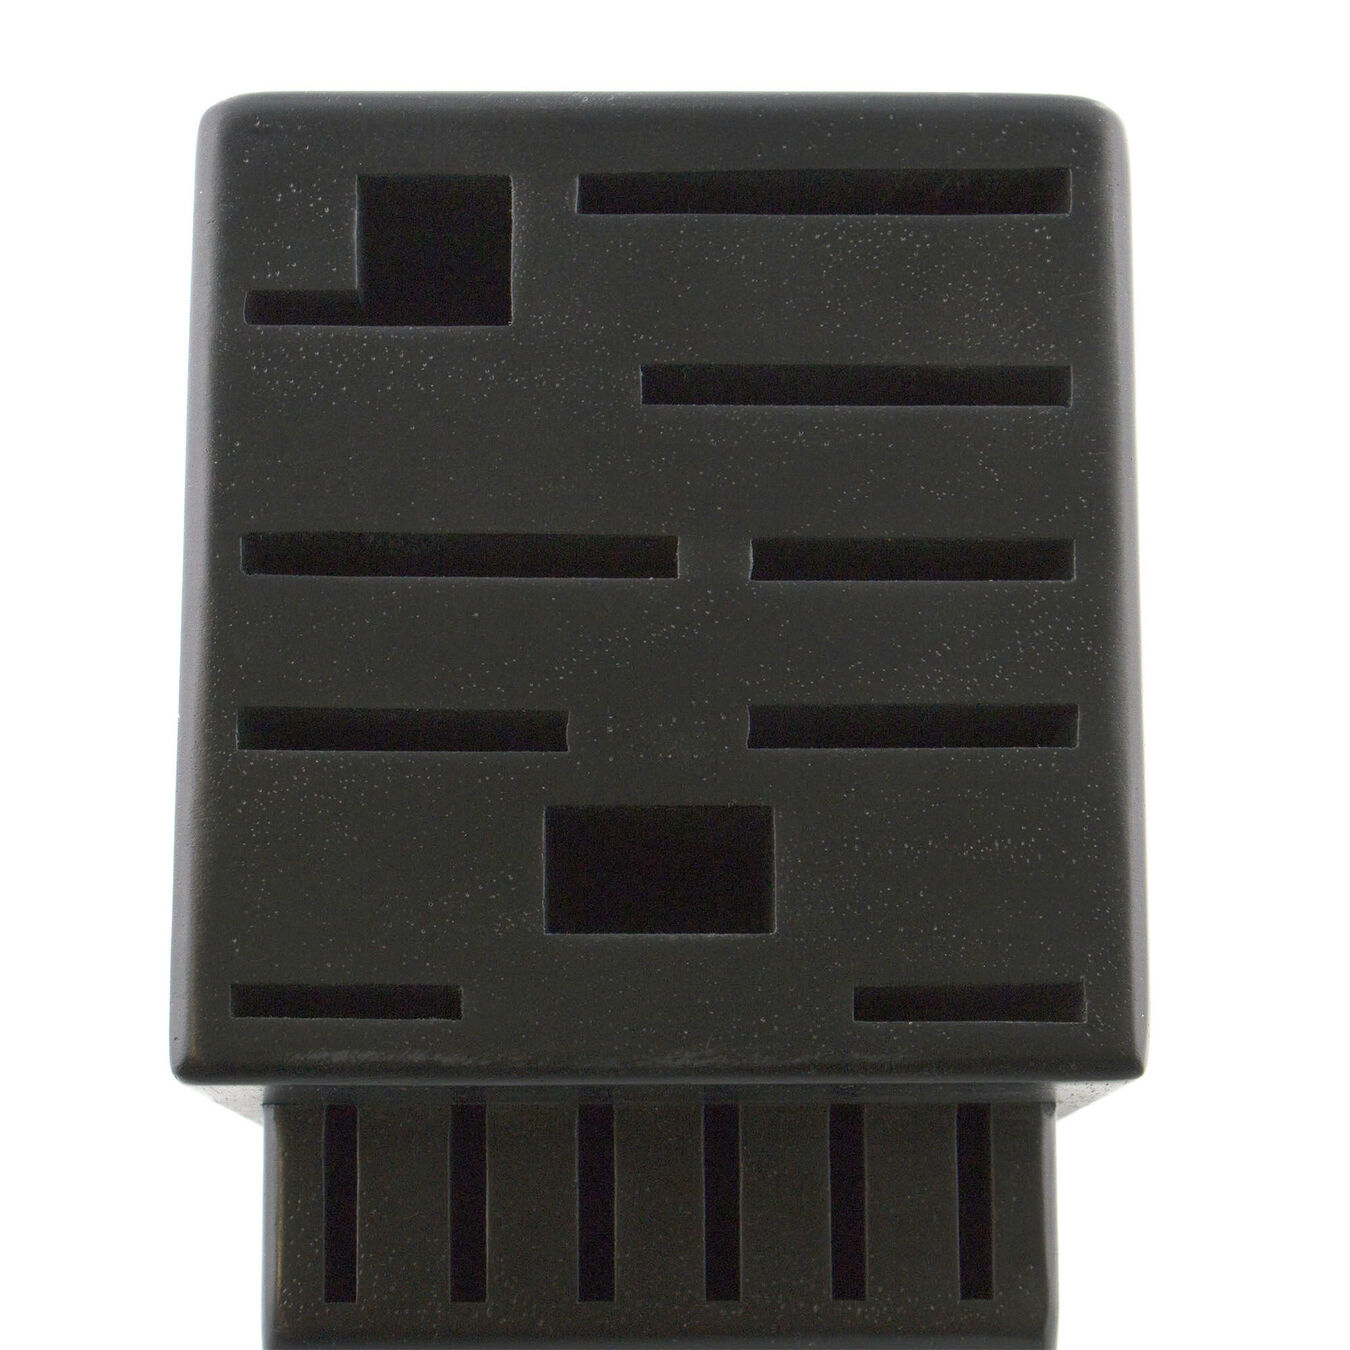 Rubberwood Black 16-slot block,,large 3